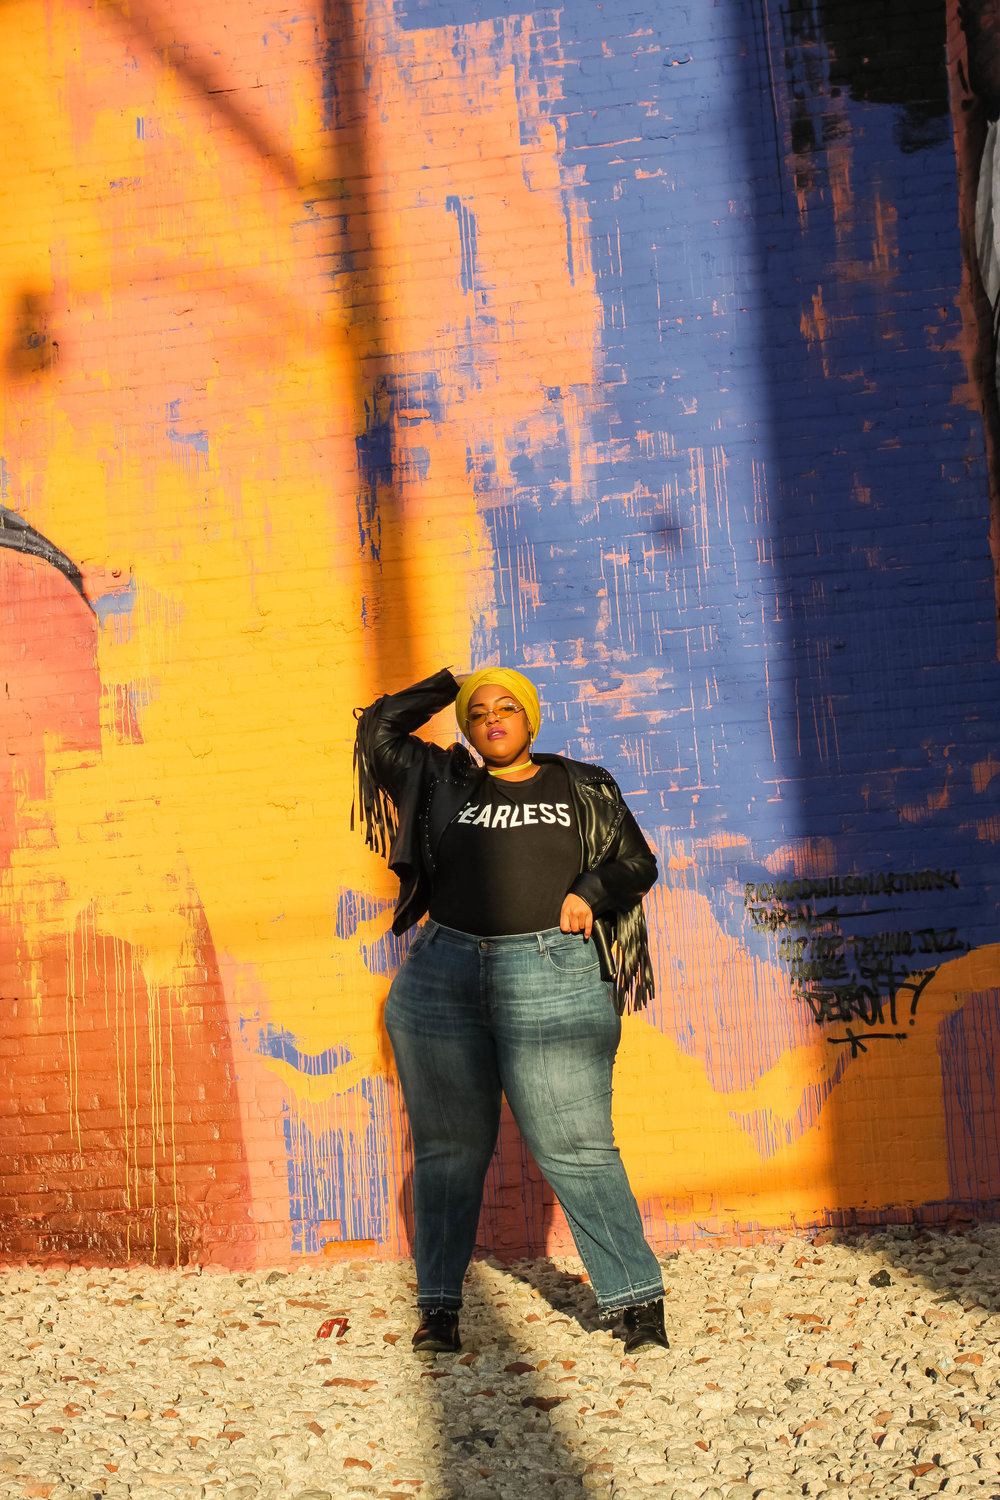 Leah-Vernon-Plus-Size-Model-Detroit-Blogger-Muslim-Girl-Body-Positive-Activist-Feminist-9.jpg